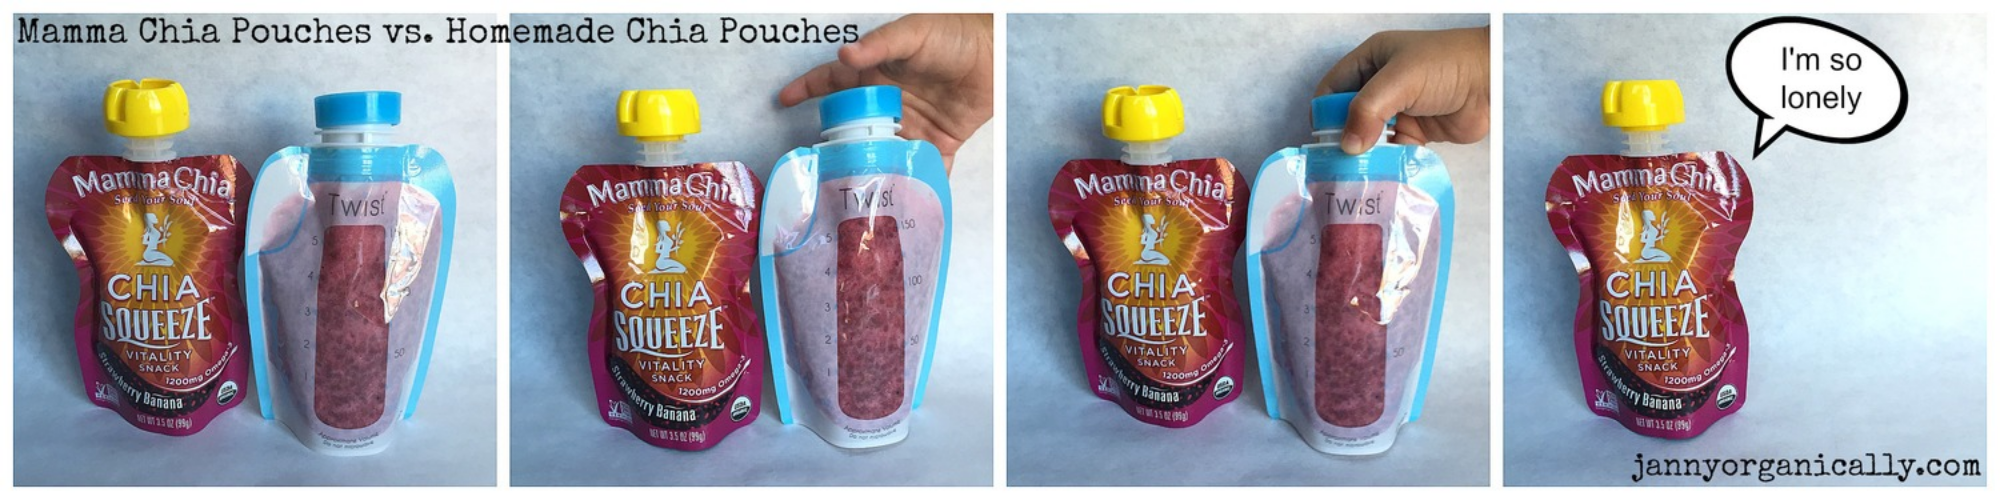 Copycat Mamma Chia [Chia Squeeze] Pouches — janny: organically.